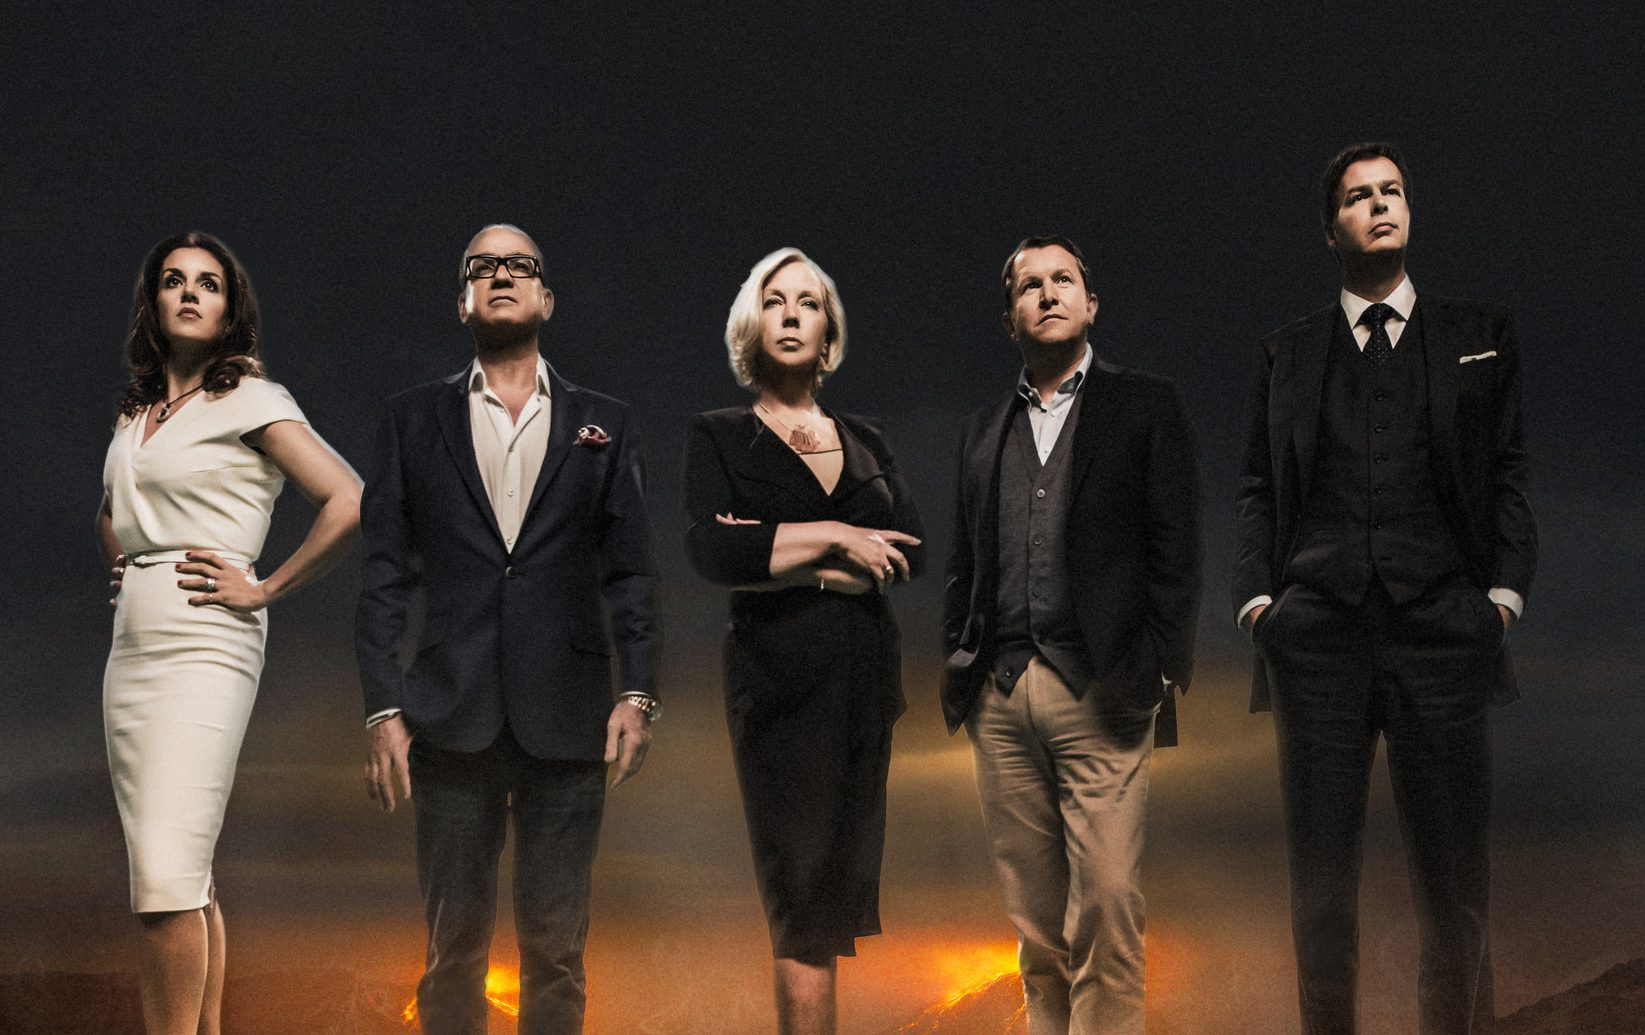 Sarah Willingham and Nick Jenkins are out! Two quit Dragons' Den